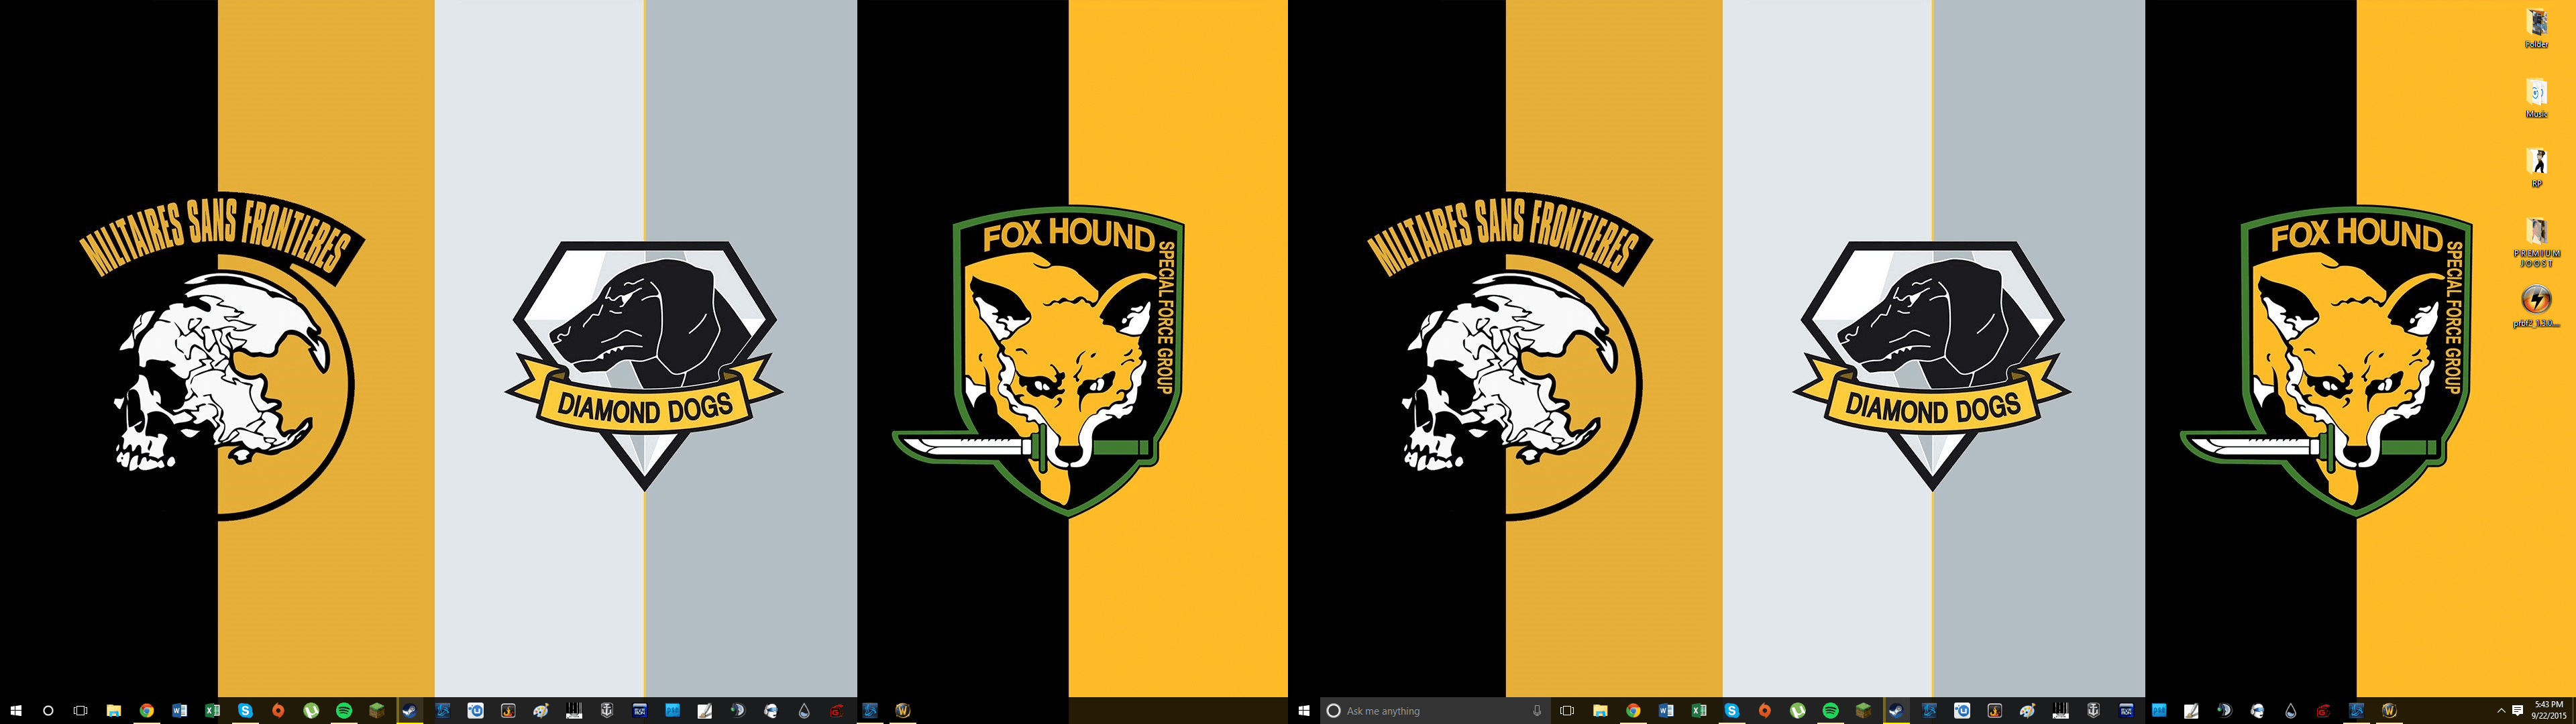 Wallpapers Hd Foxhound